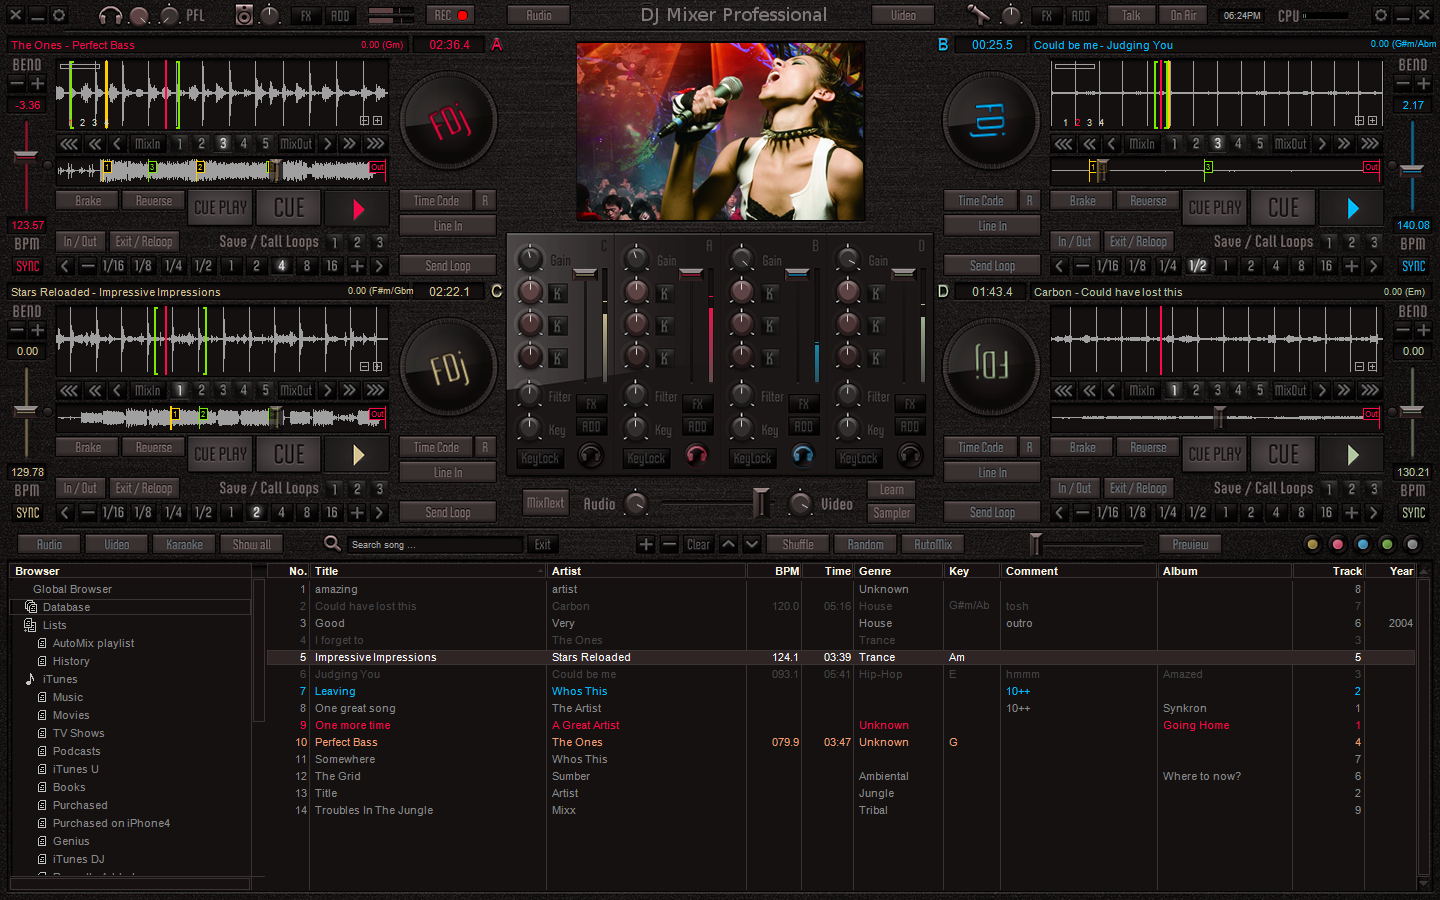 DJ Mixer 3 Pro for Windows Download